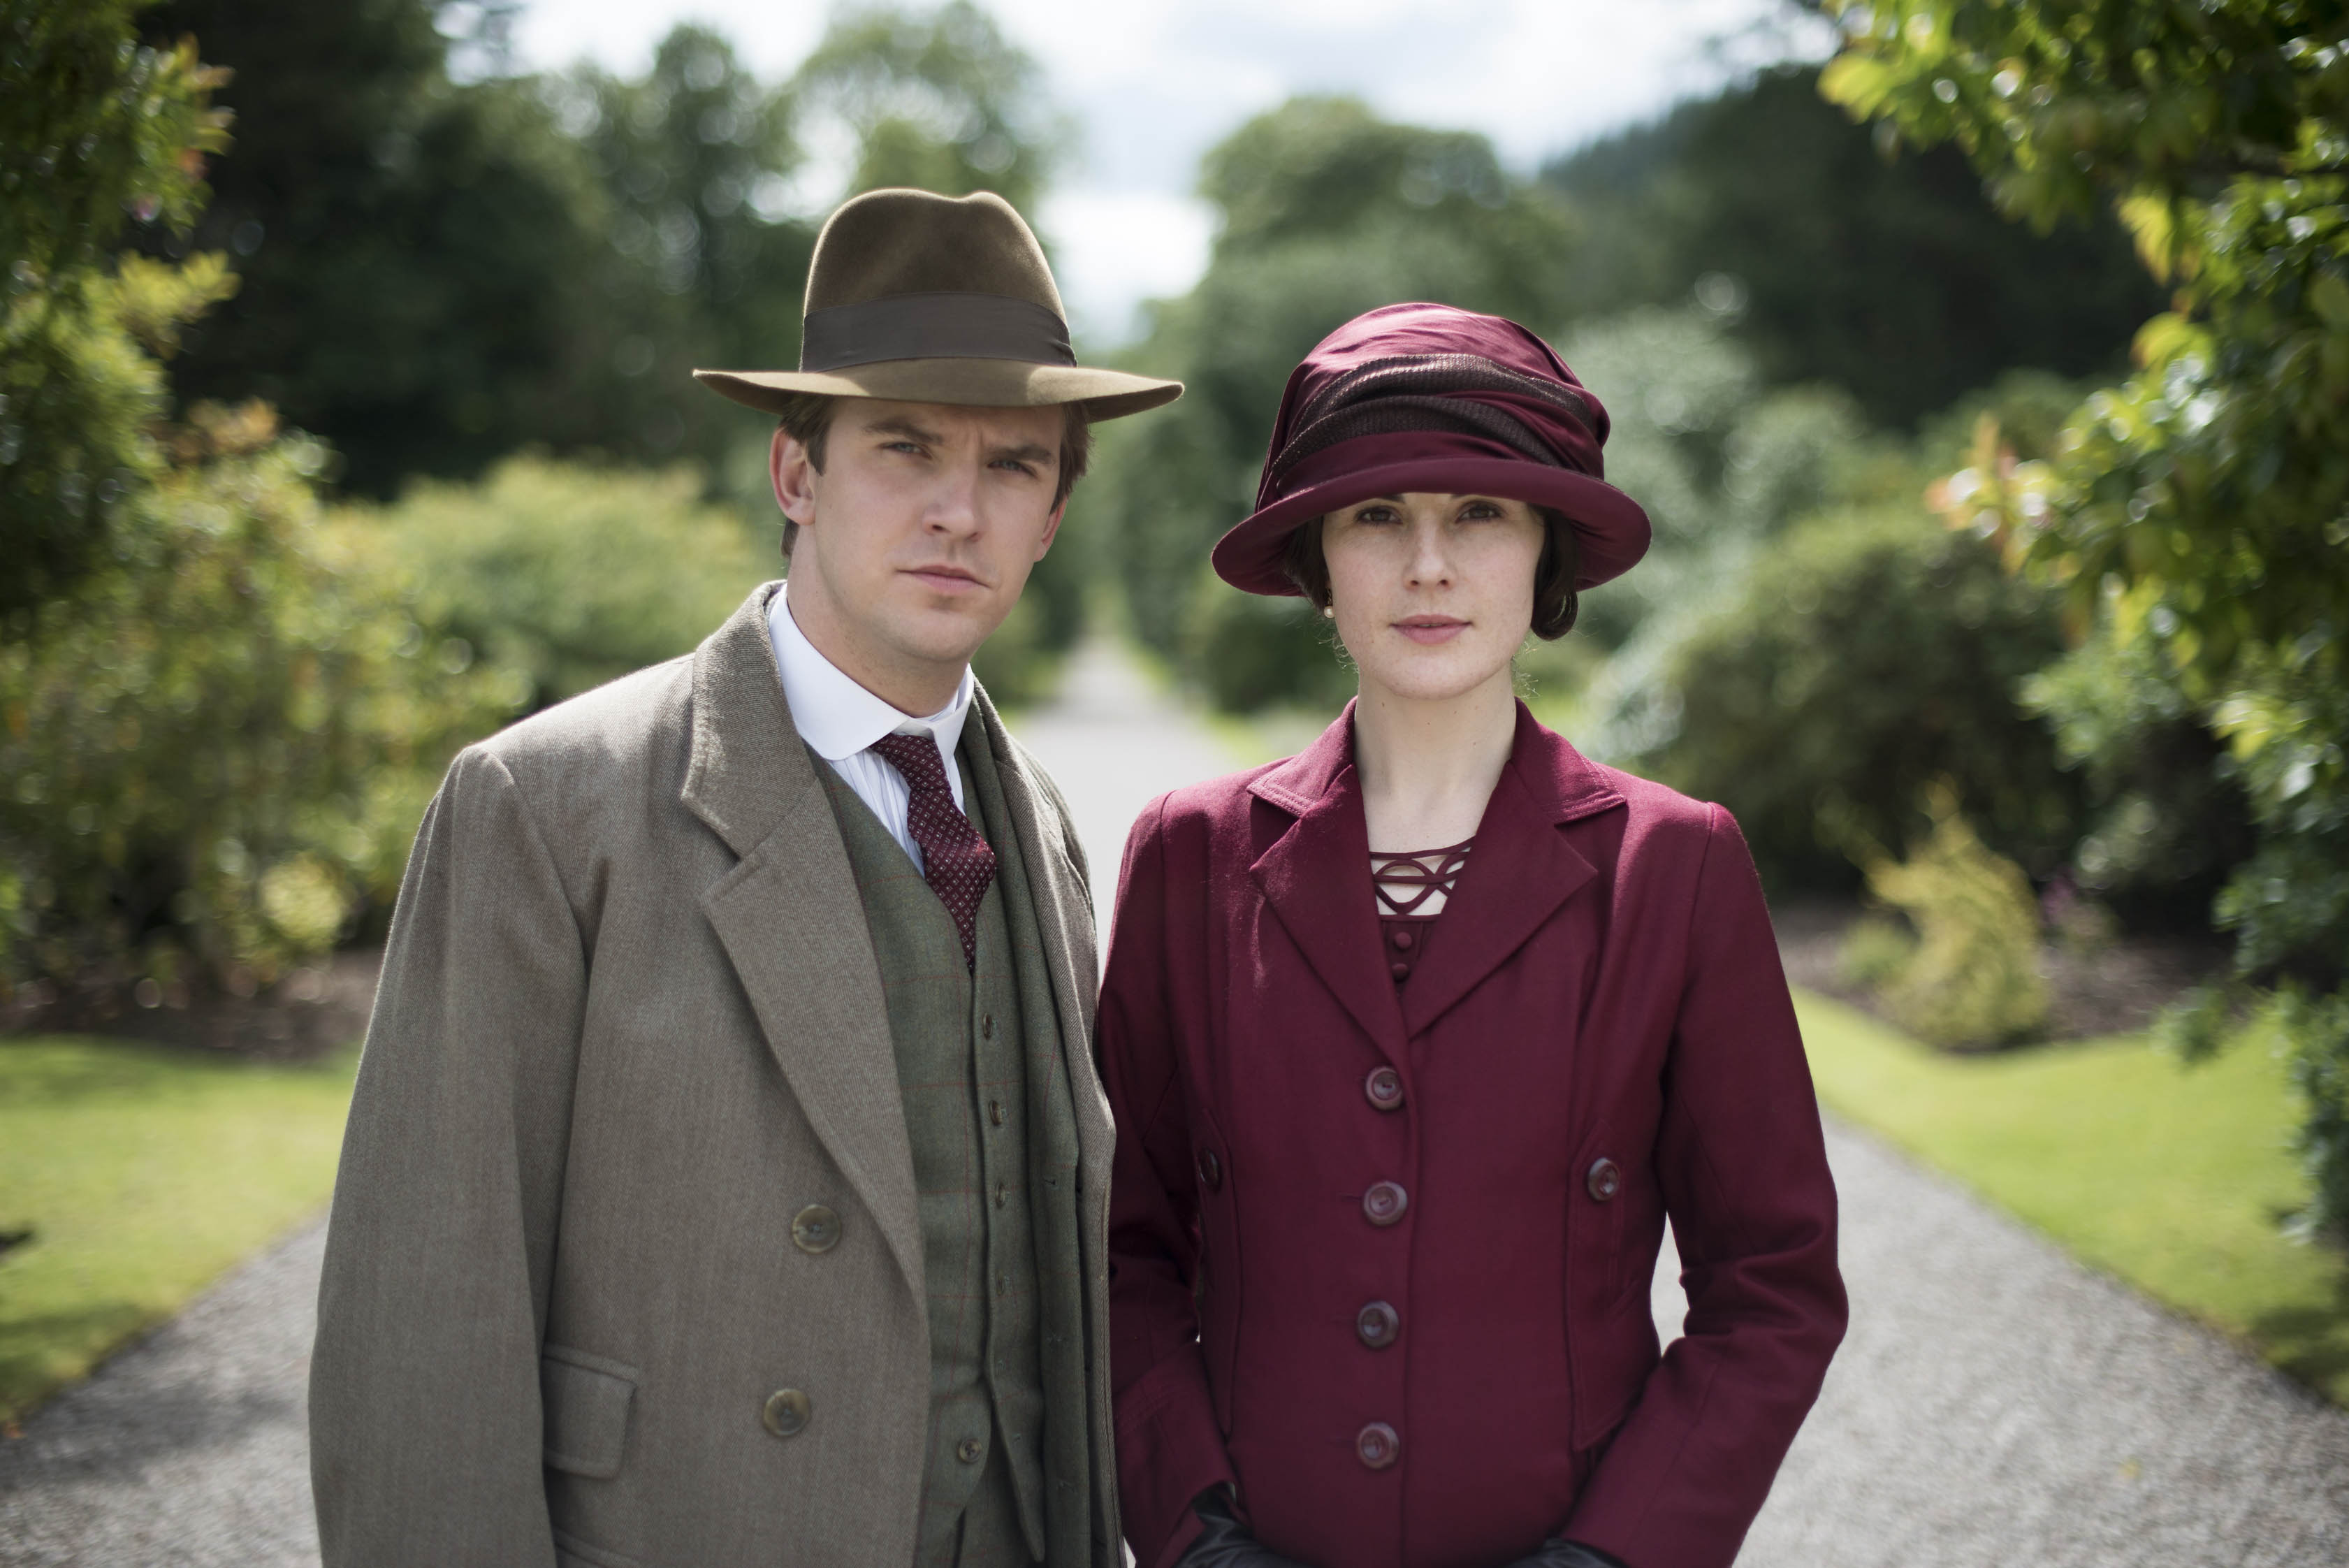 Downton Abbey Christmas special pulls in 7.3m viewers as Matthew Crawley meets shock death